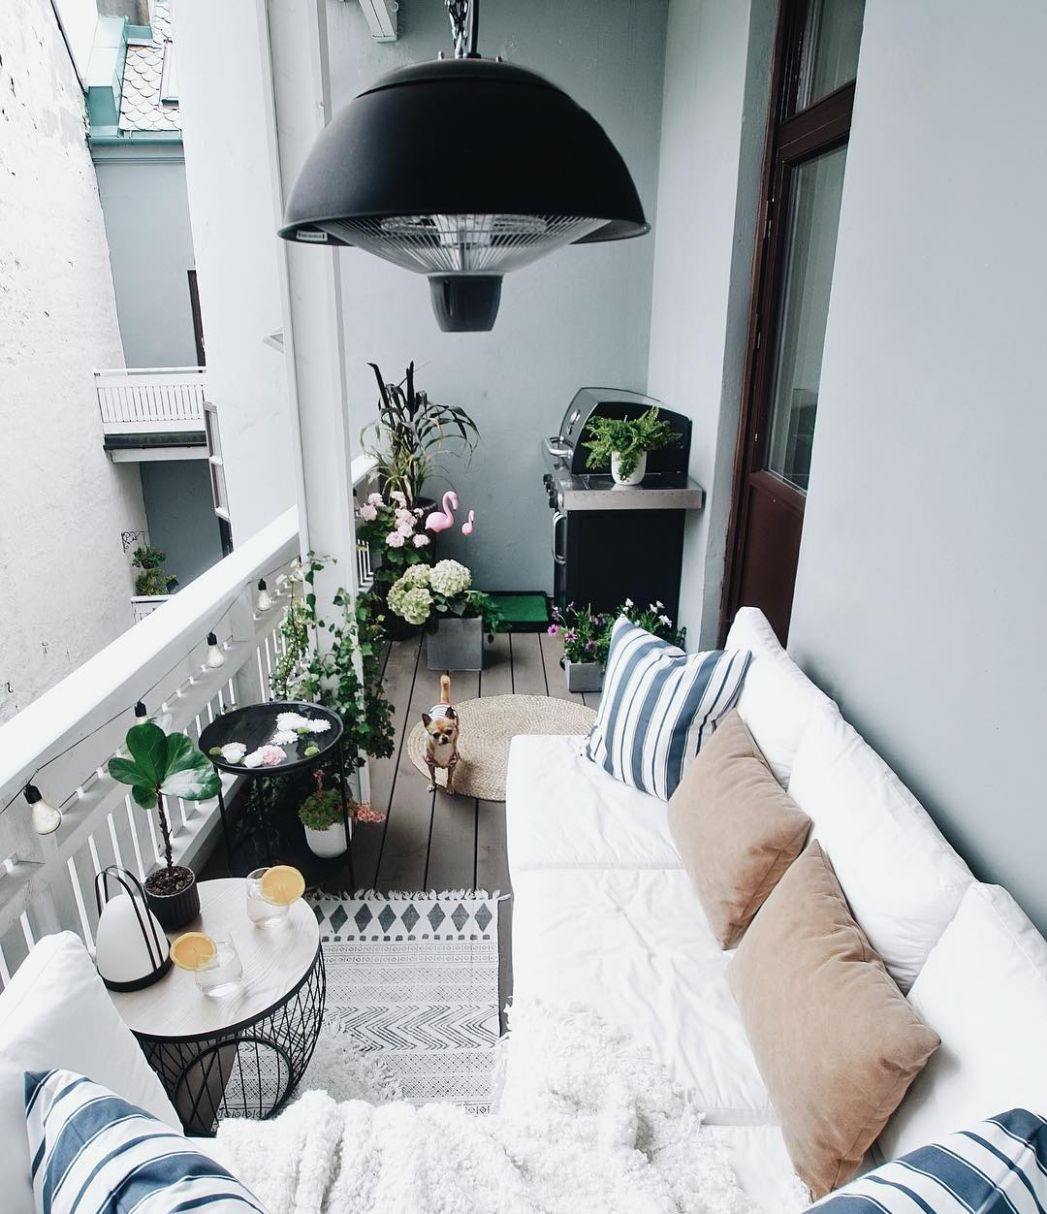 How to turn a balcony into a second living space | Better Homes ...